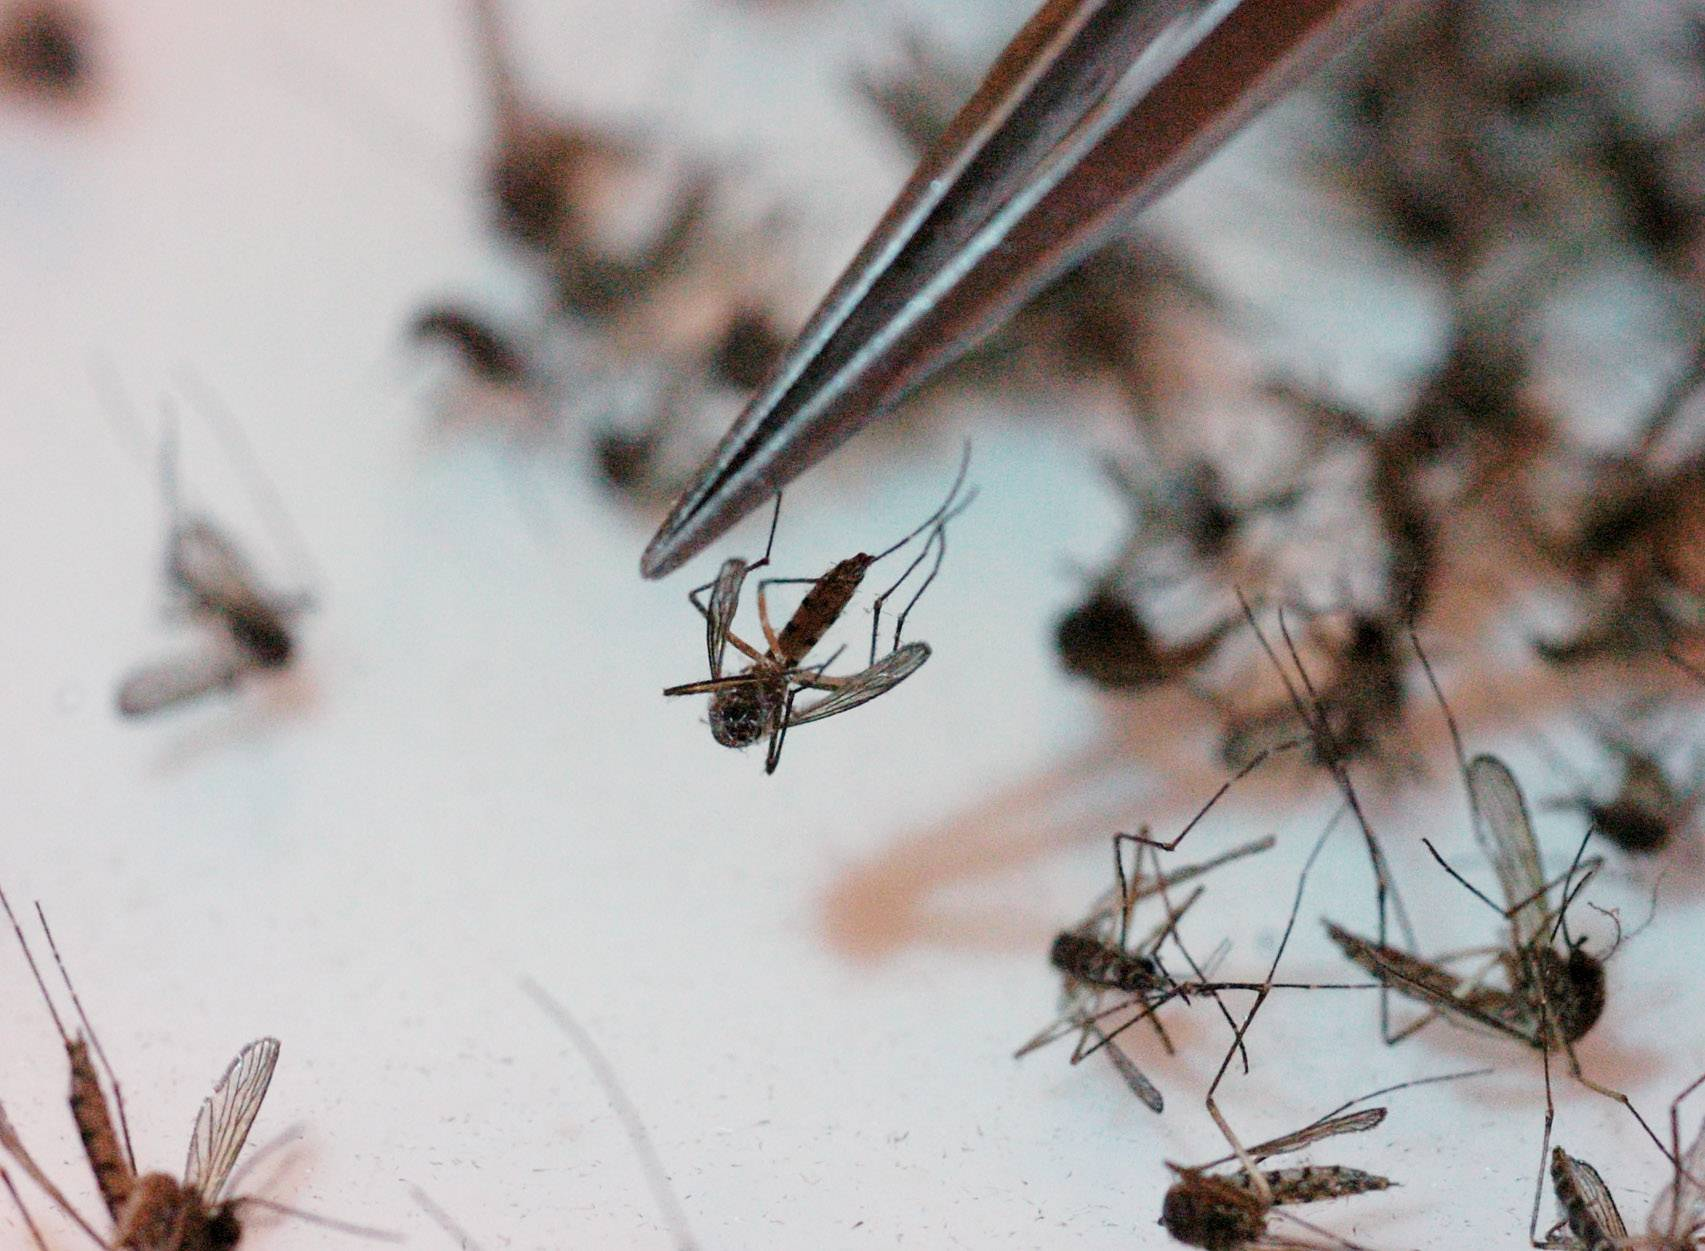 The common floodwater mosquito, the aedes vexans, being counted at the Northwest Mosquito Abatement District.